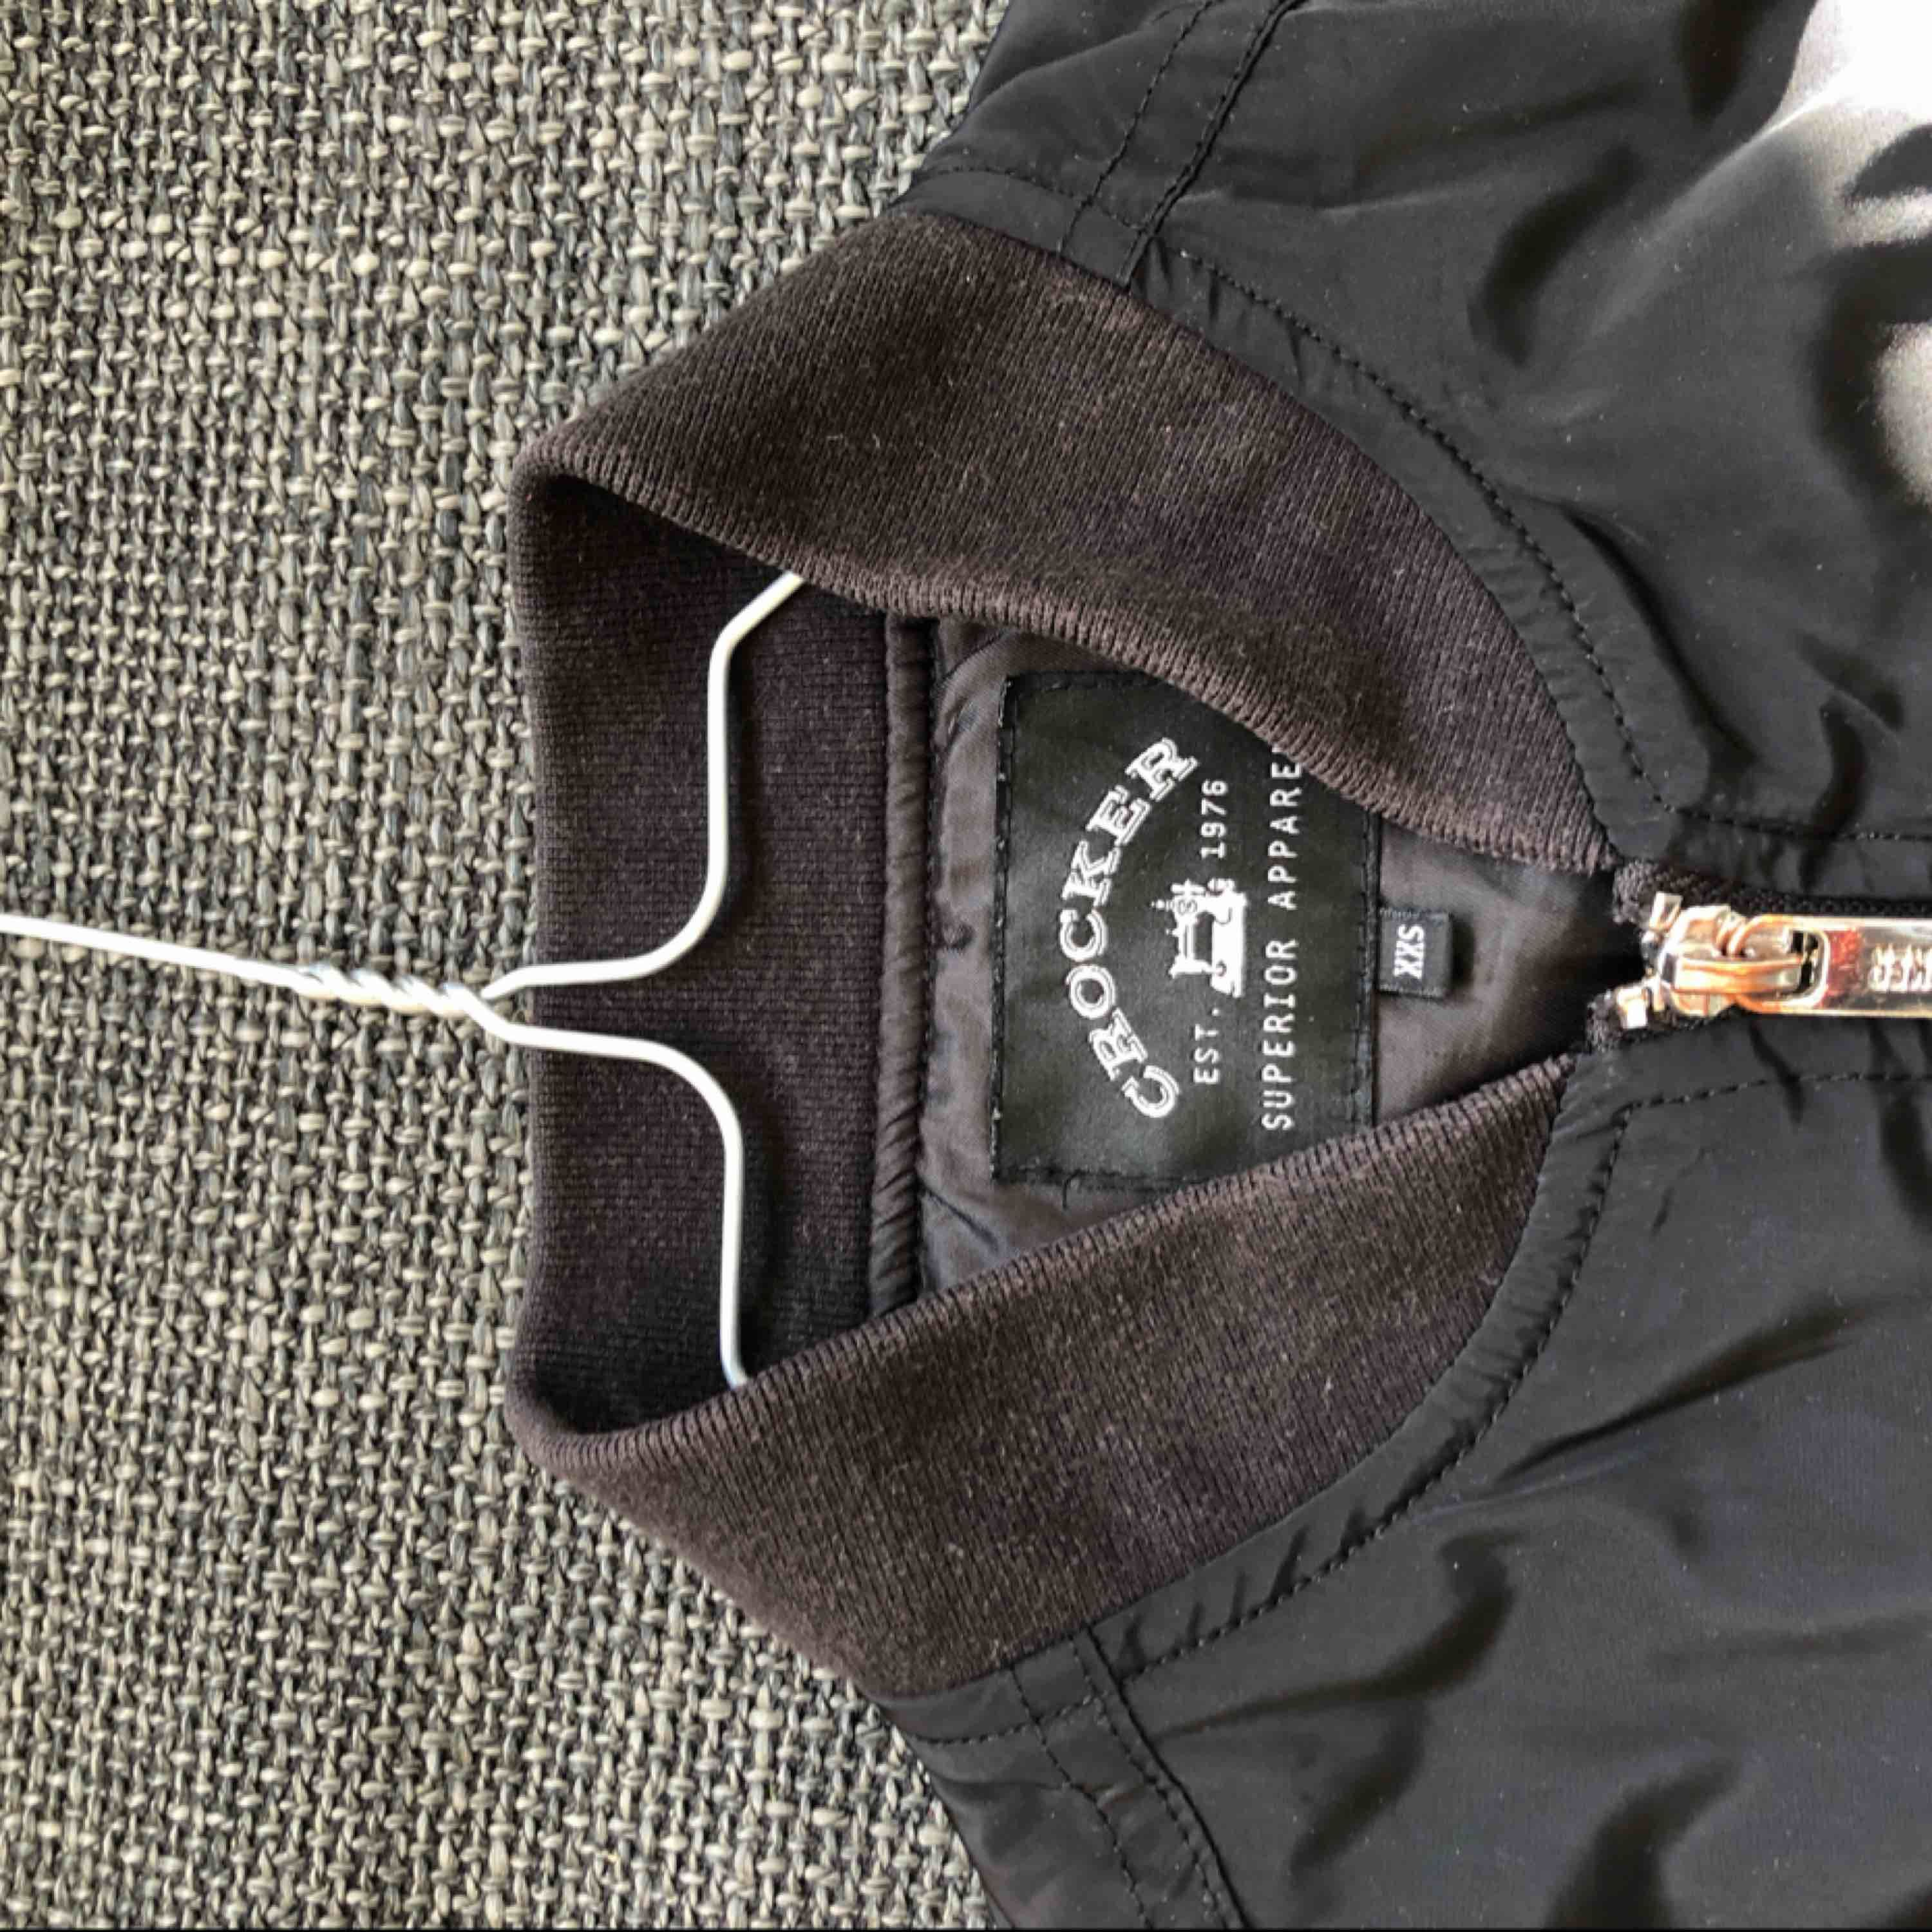 3 years old, small form fitting bomber jacket, worn maybe 10 times, okay condition. . Jackor.